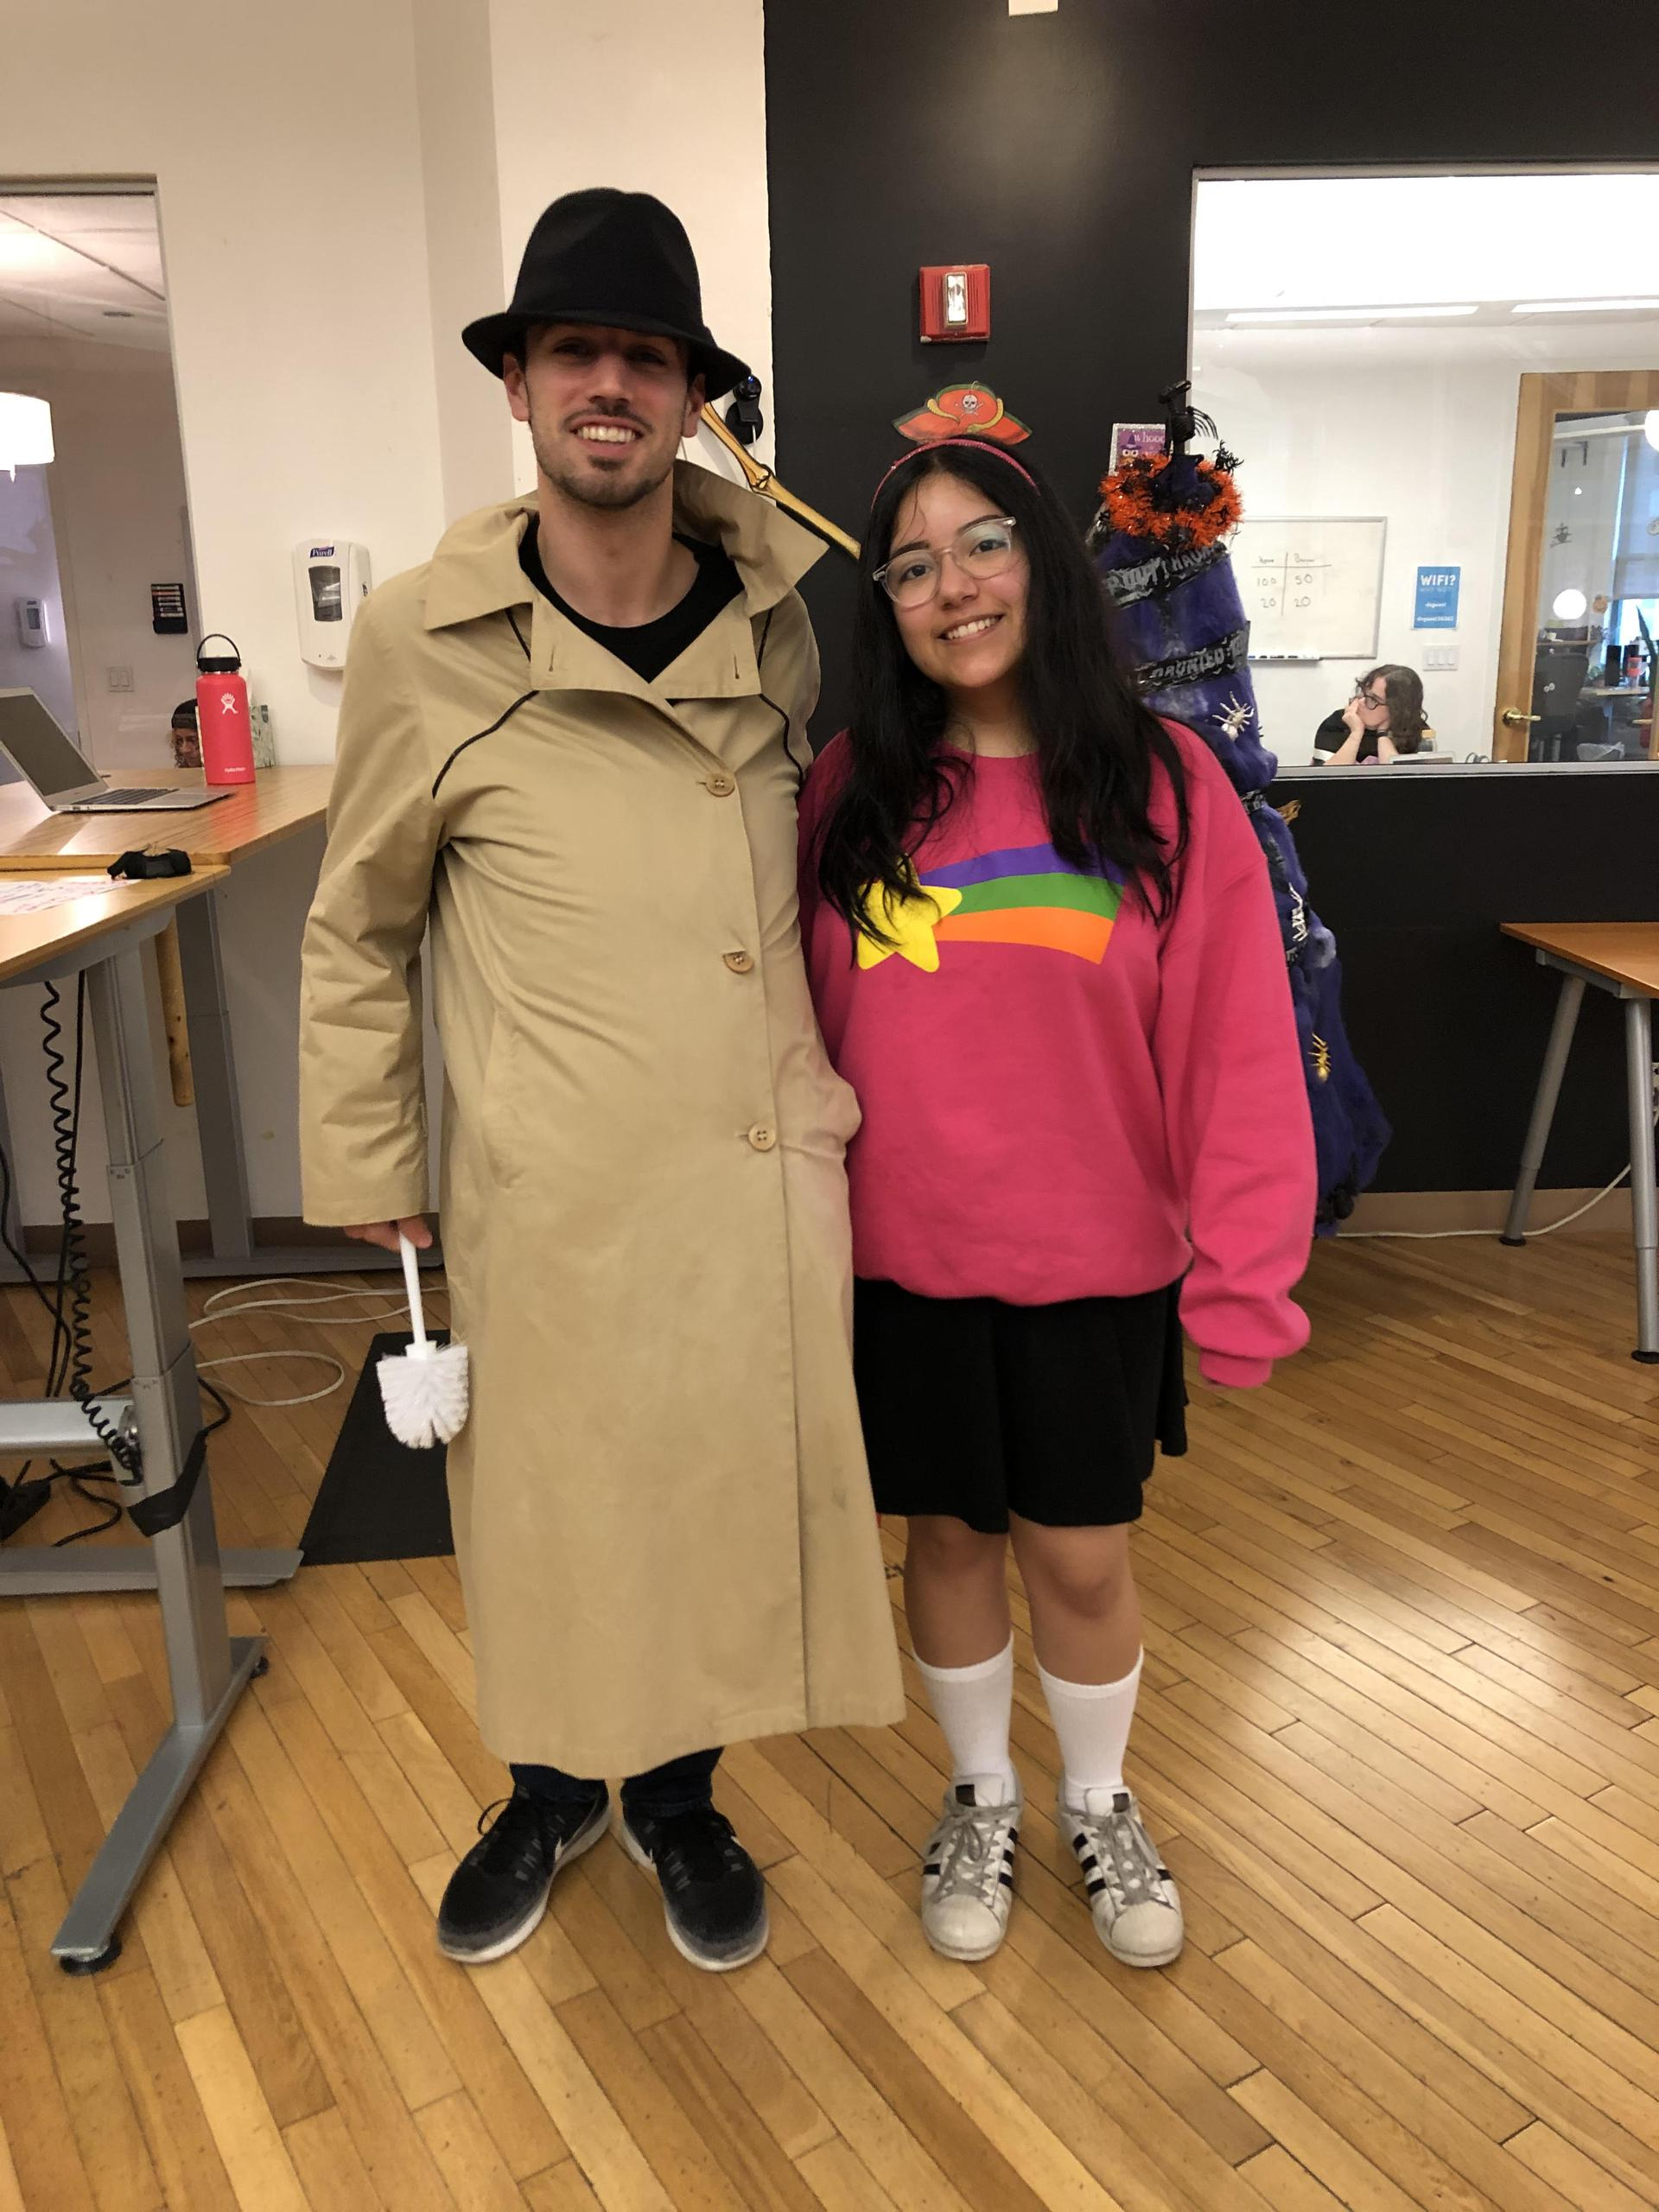 Anthony and Jackie in their Halloween costumes